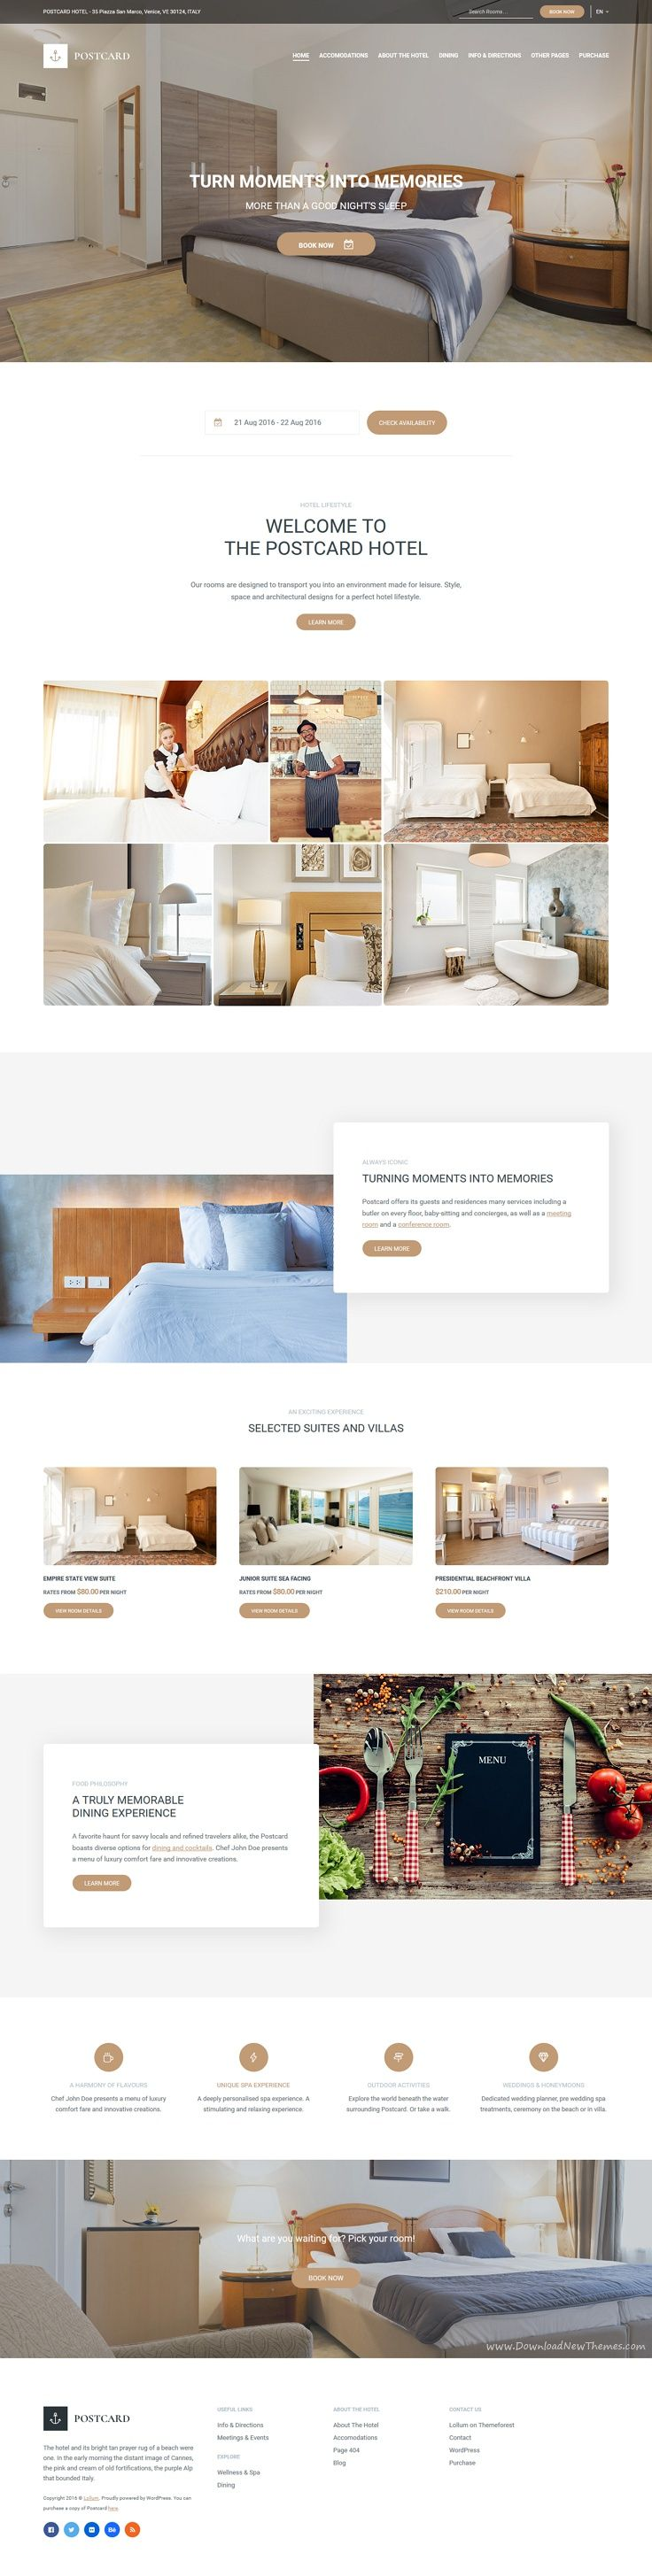 Postcard is a modern #WordPress Theme for responsive #Hotel website with a powerful #reservation system download now➯ https://themeforest.net/item/postcard-modern-hotel-wordpress-theme/16760965?ref=Datasata